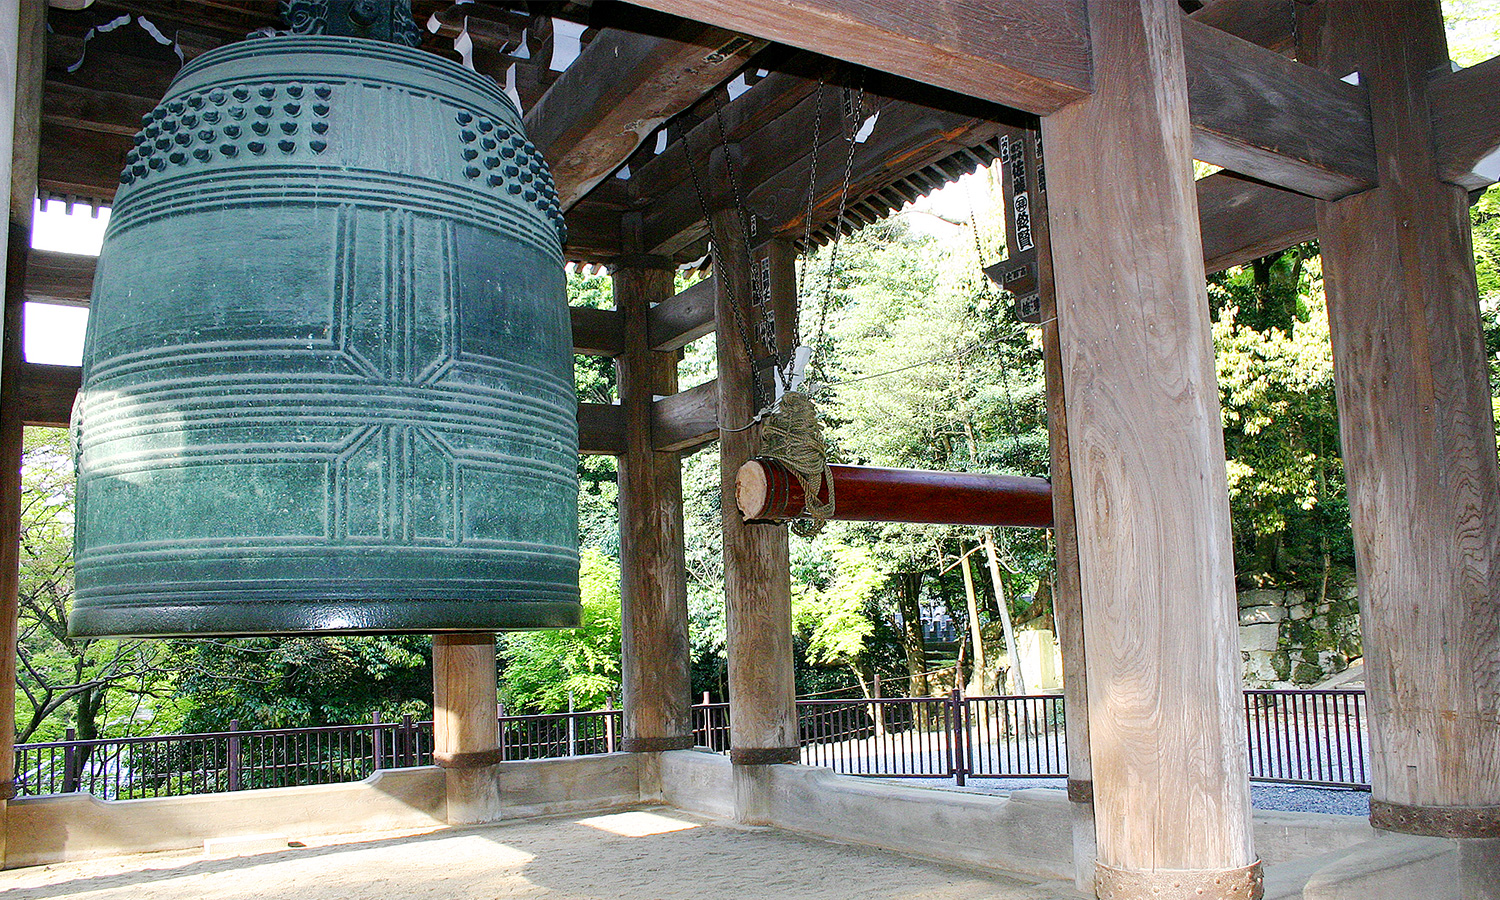 mportant Cultural Properties Ōgane (Large Bell) and the Daishōrō (Great Bell Tower)